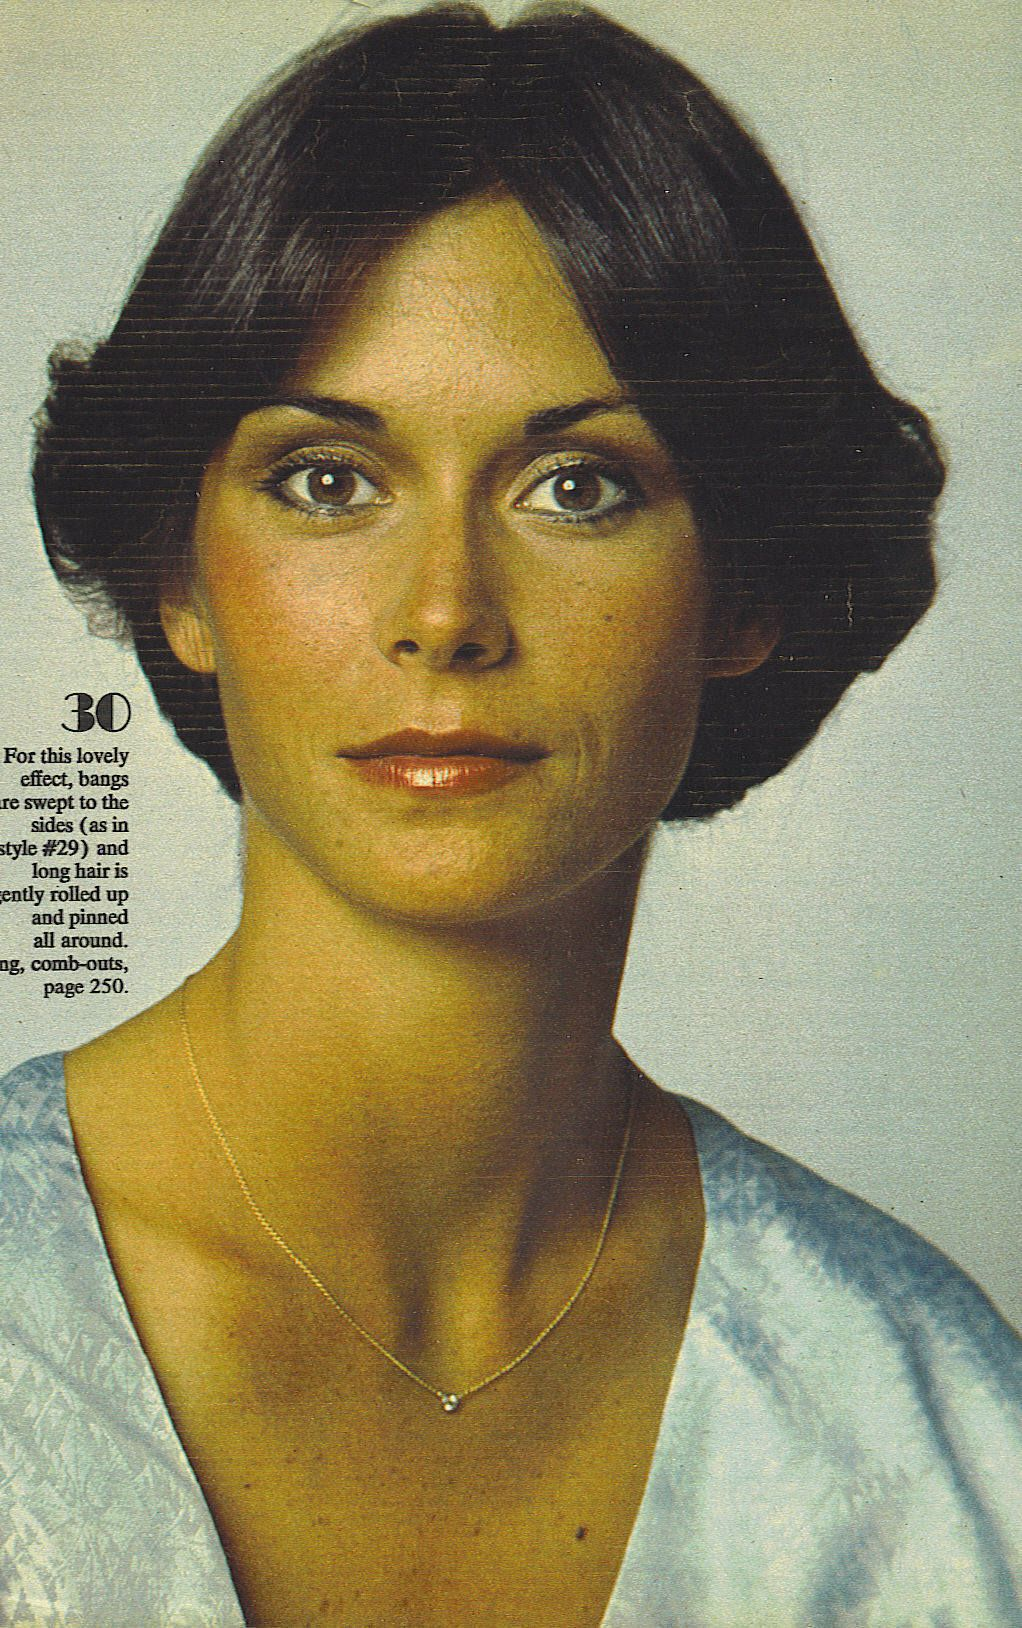 Discussion on this topic: Vivian Pickles (born 1931), kate-jackson/